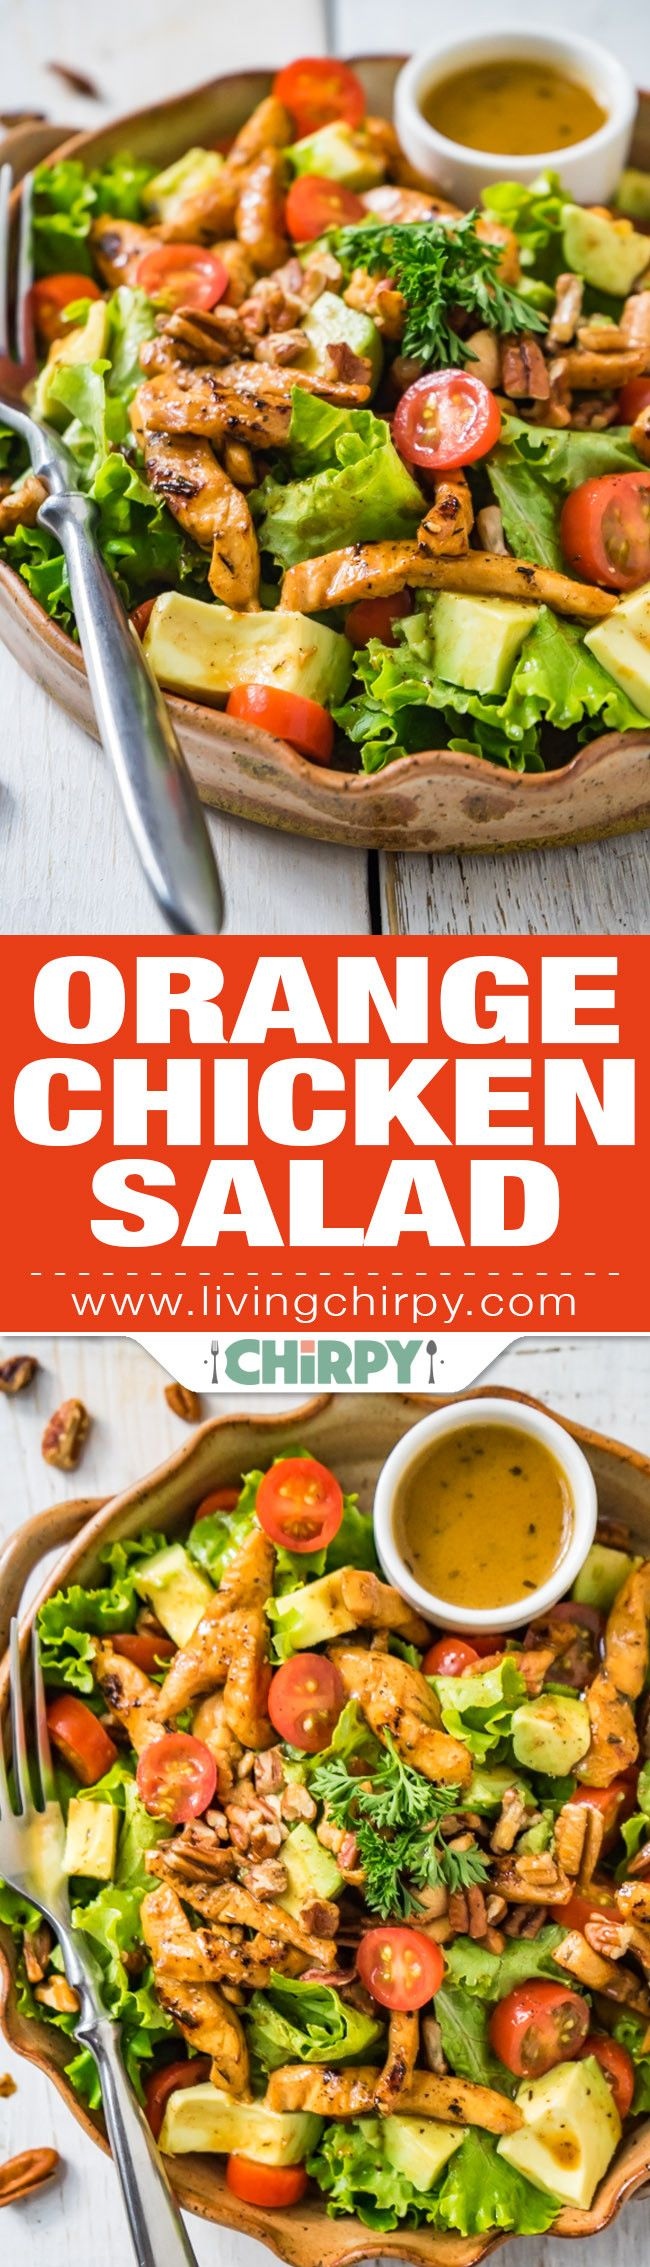 Orange Chicken Salad - green leaf lettuce topped with cherry tomatoes, avocado, pecan nuts and chicken with a warm orange dressing.